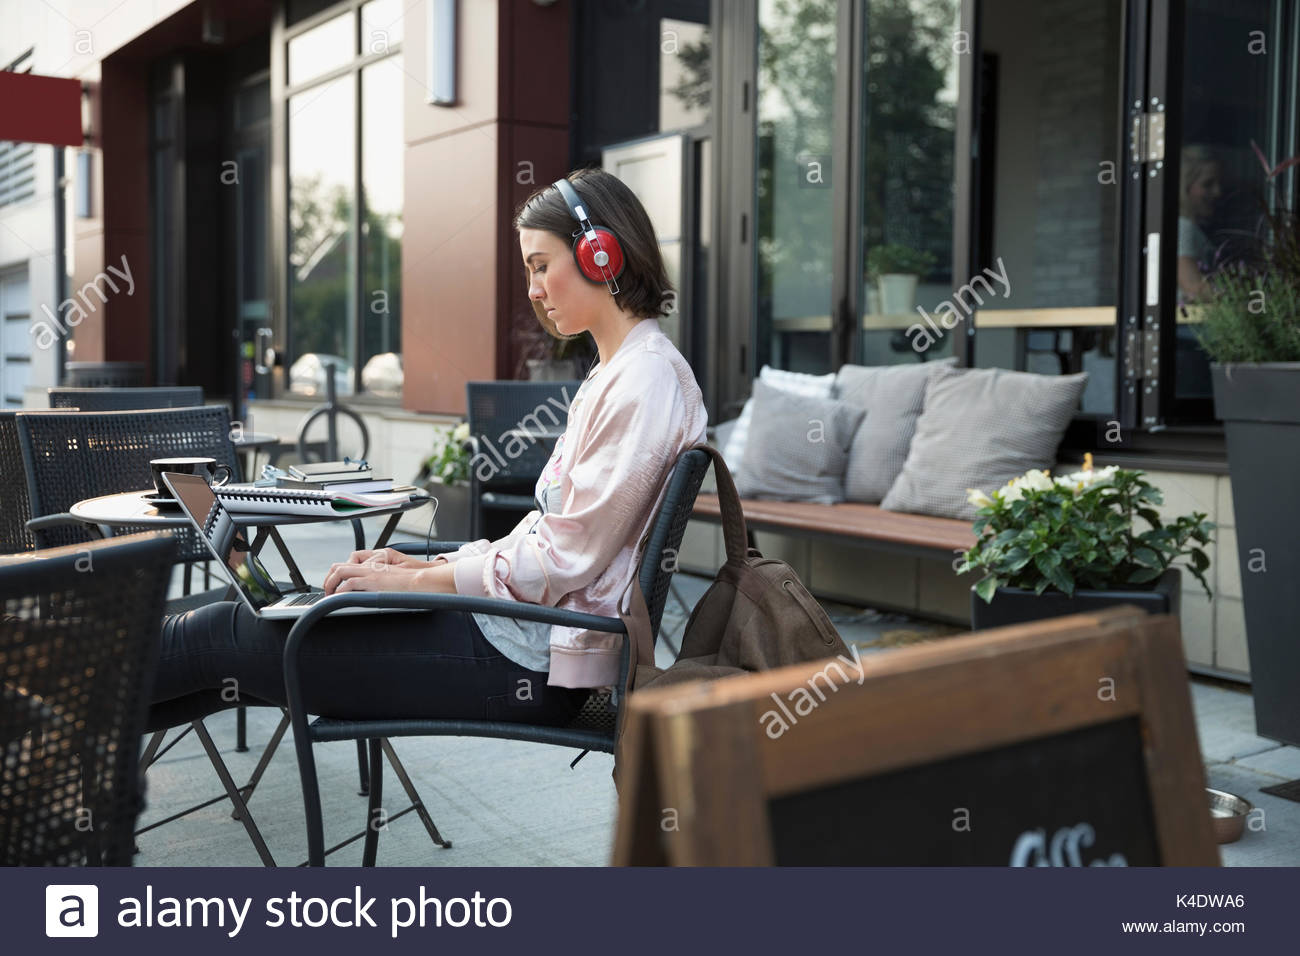 Brunette woman with headphones listening to music and using laptop at sidewalk cafe - Stock Image